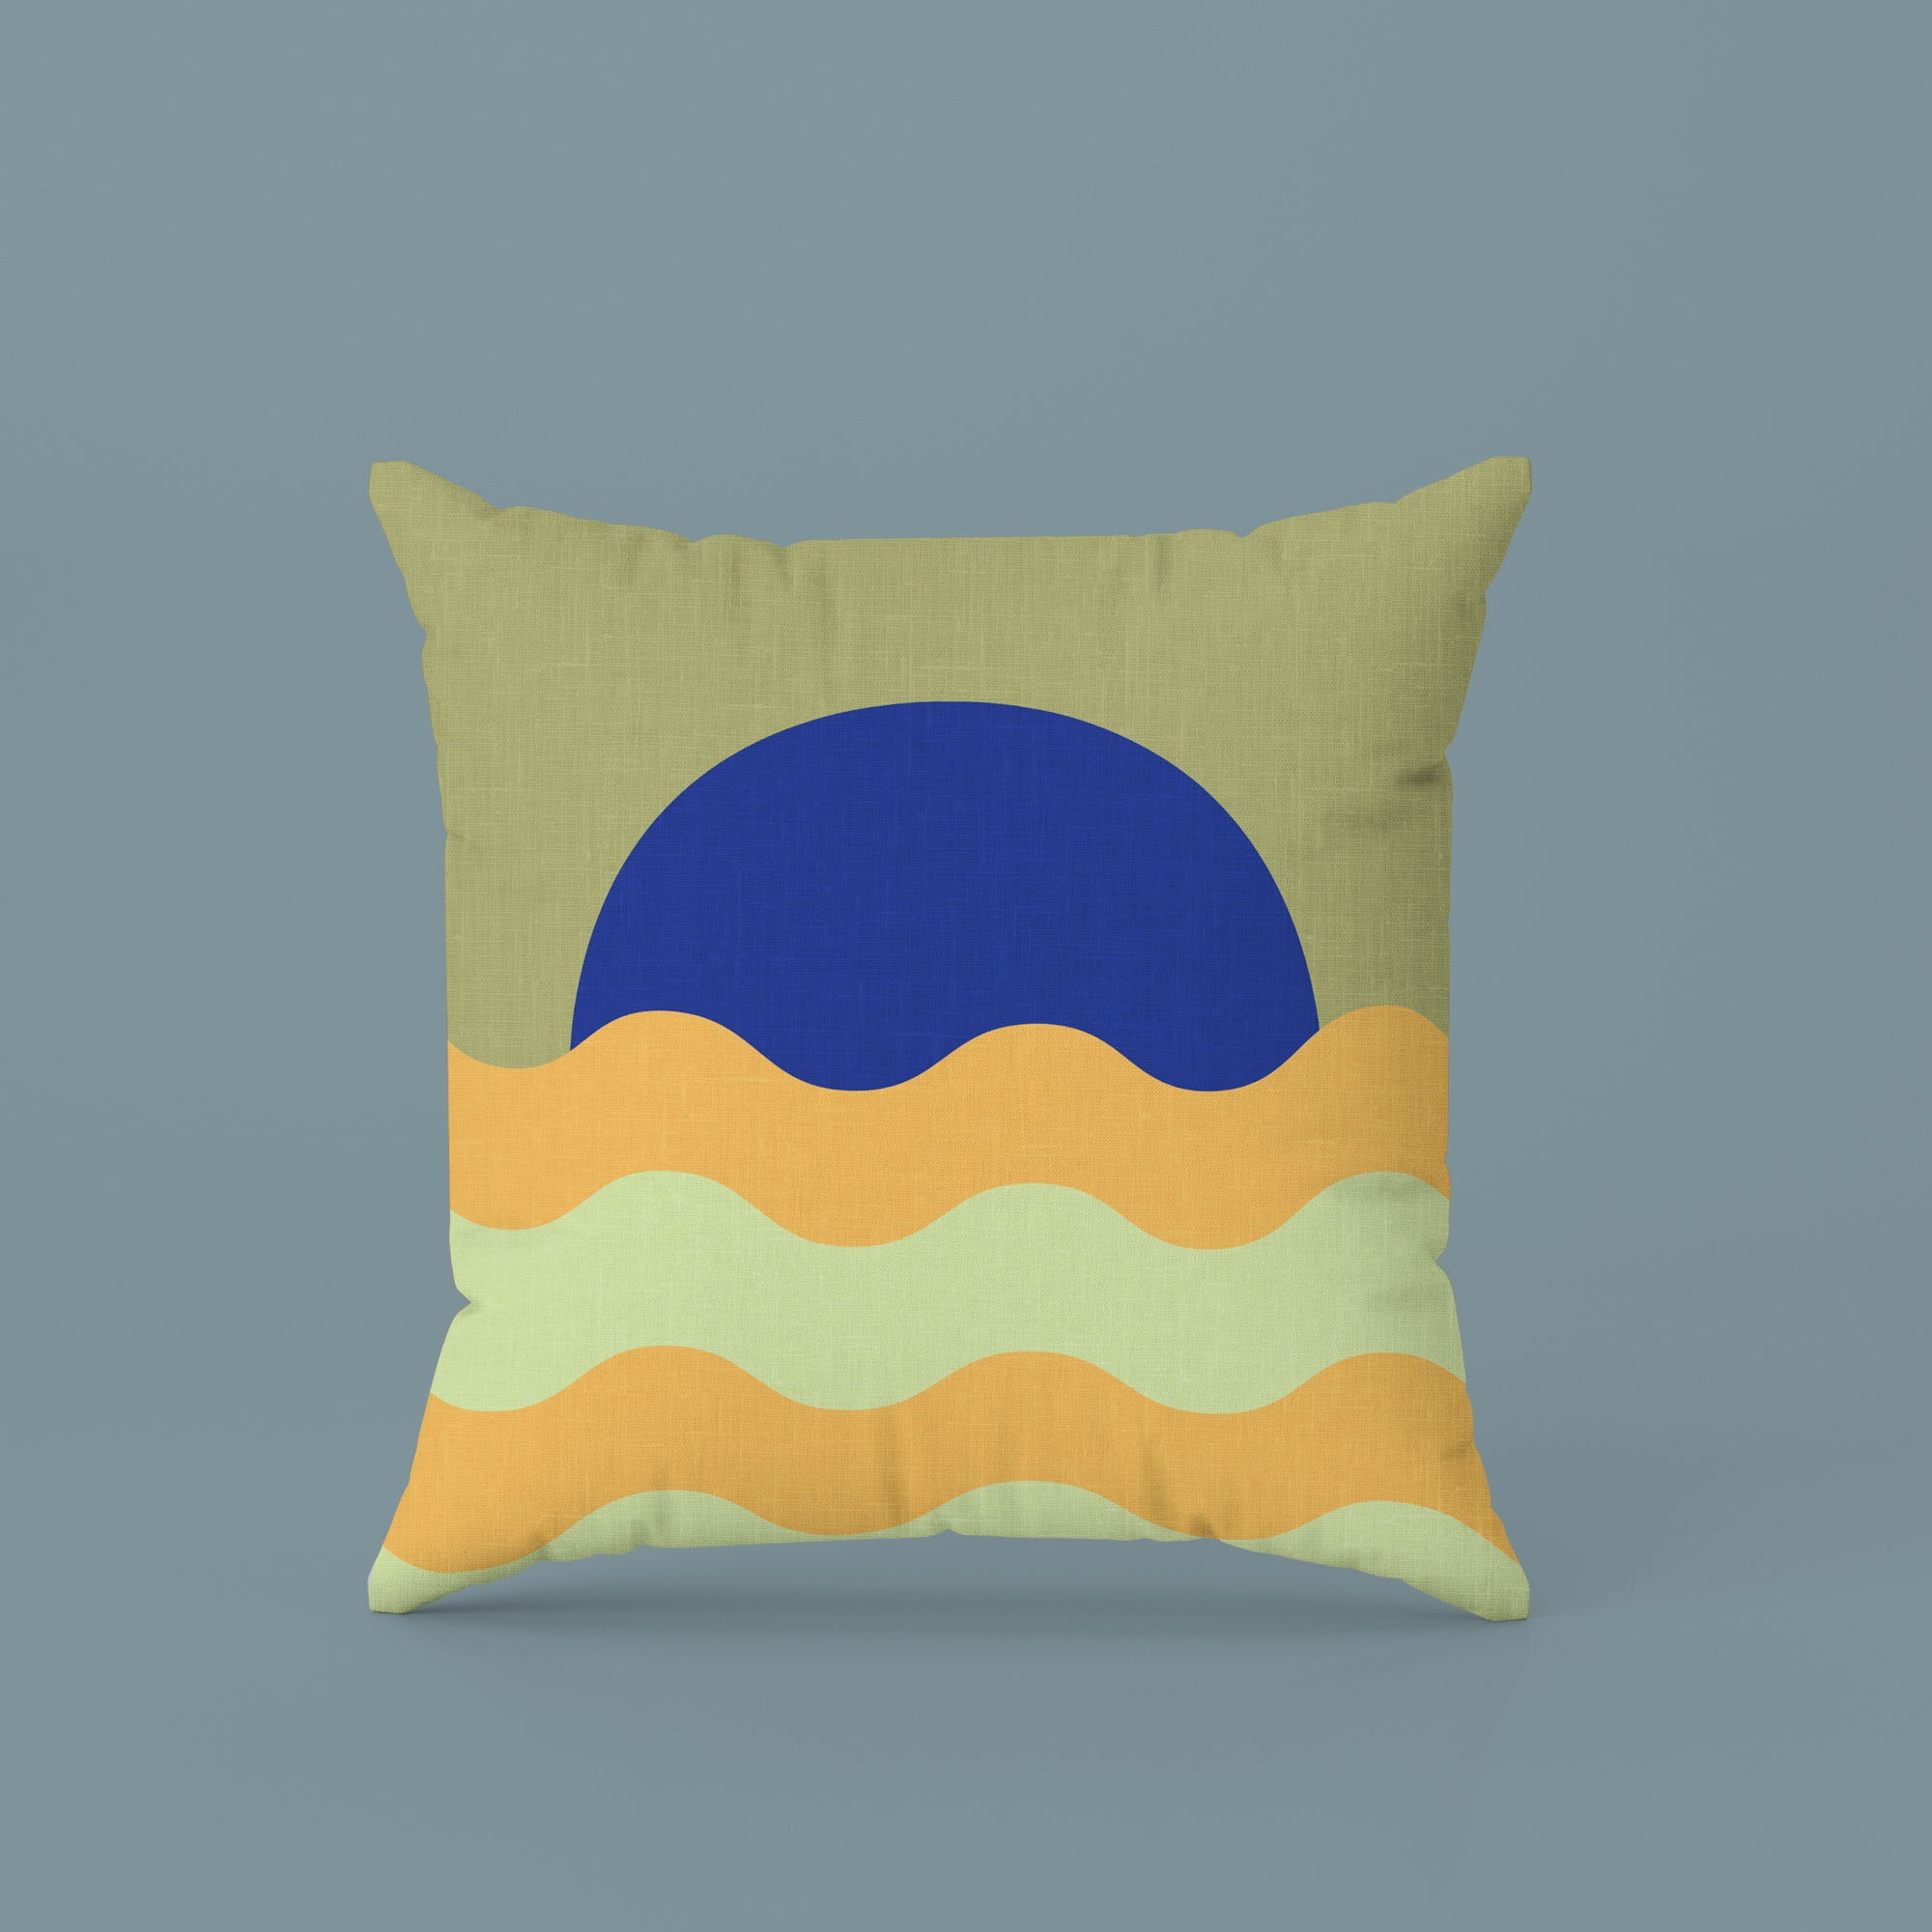 Melbourne Mid Century II Cushion